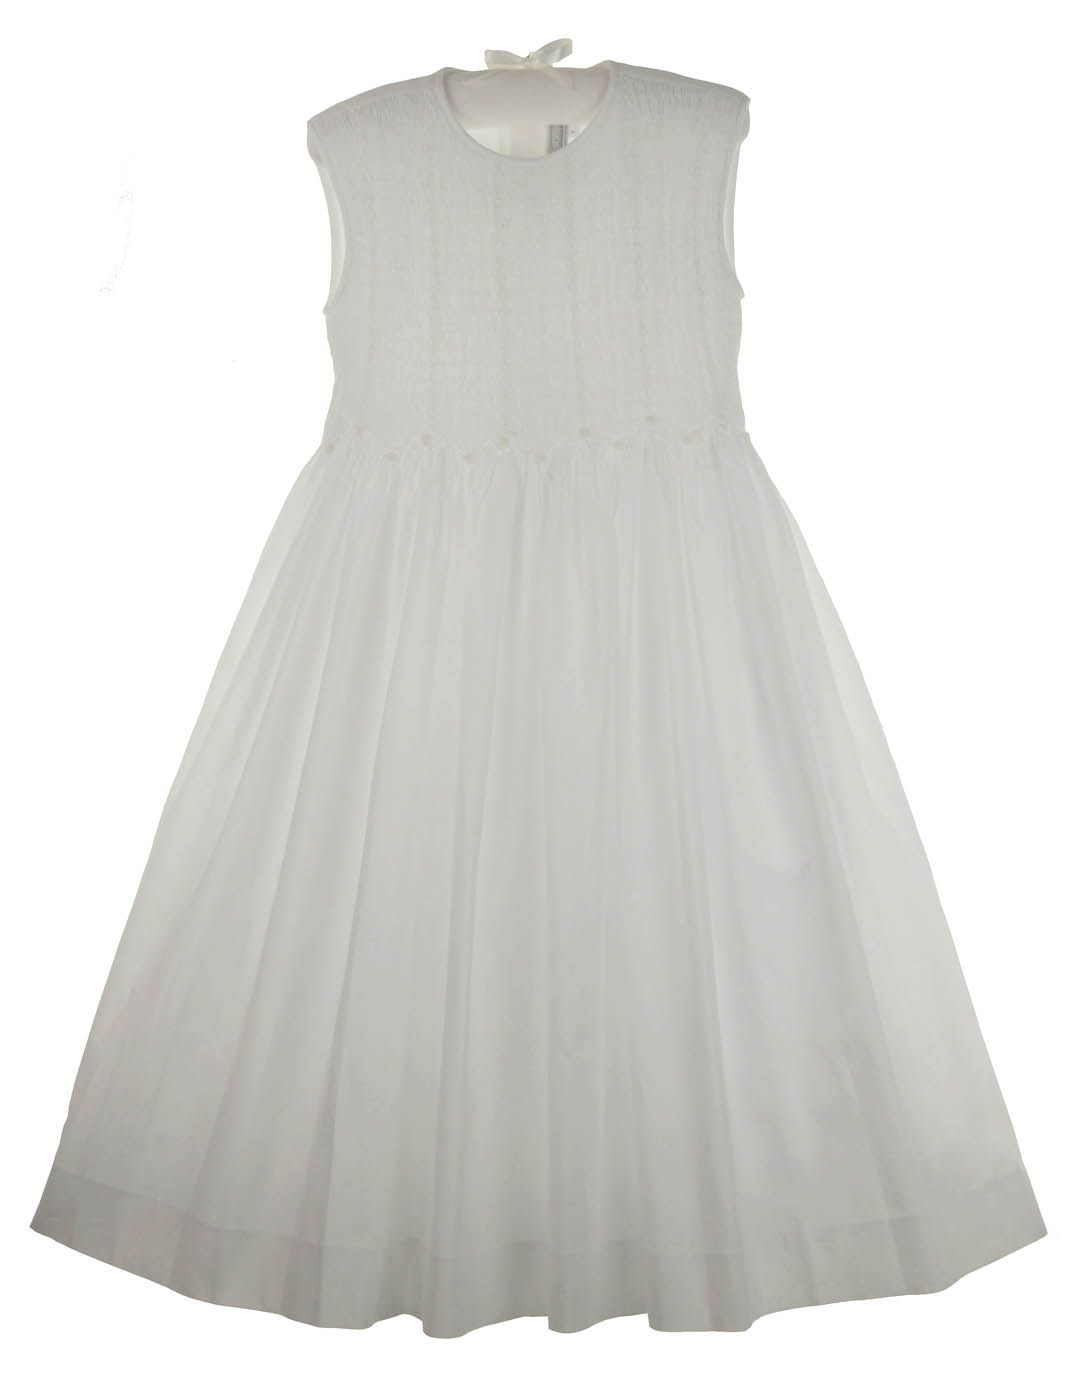 9e38cea50f5 NEW Fantaisie Kids White Cotton Lawn Smocked Sleeveless Dress with  Embroidery  80.00  FirstCommunionDress